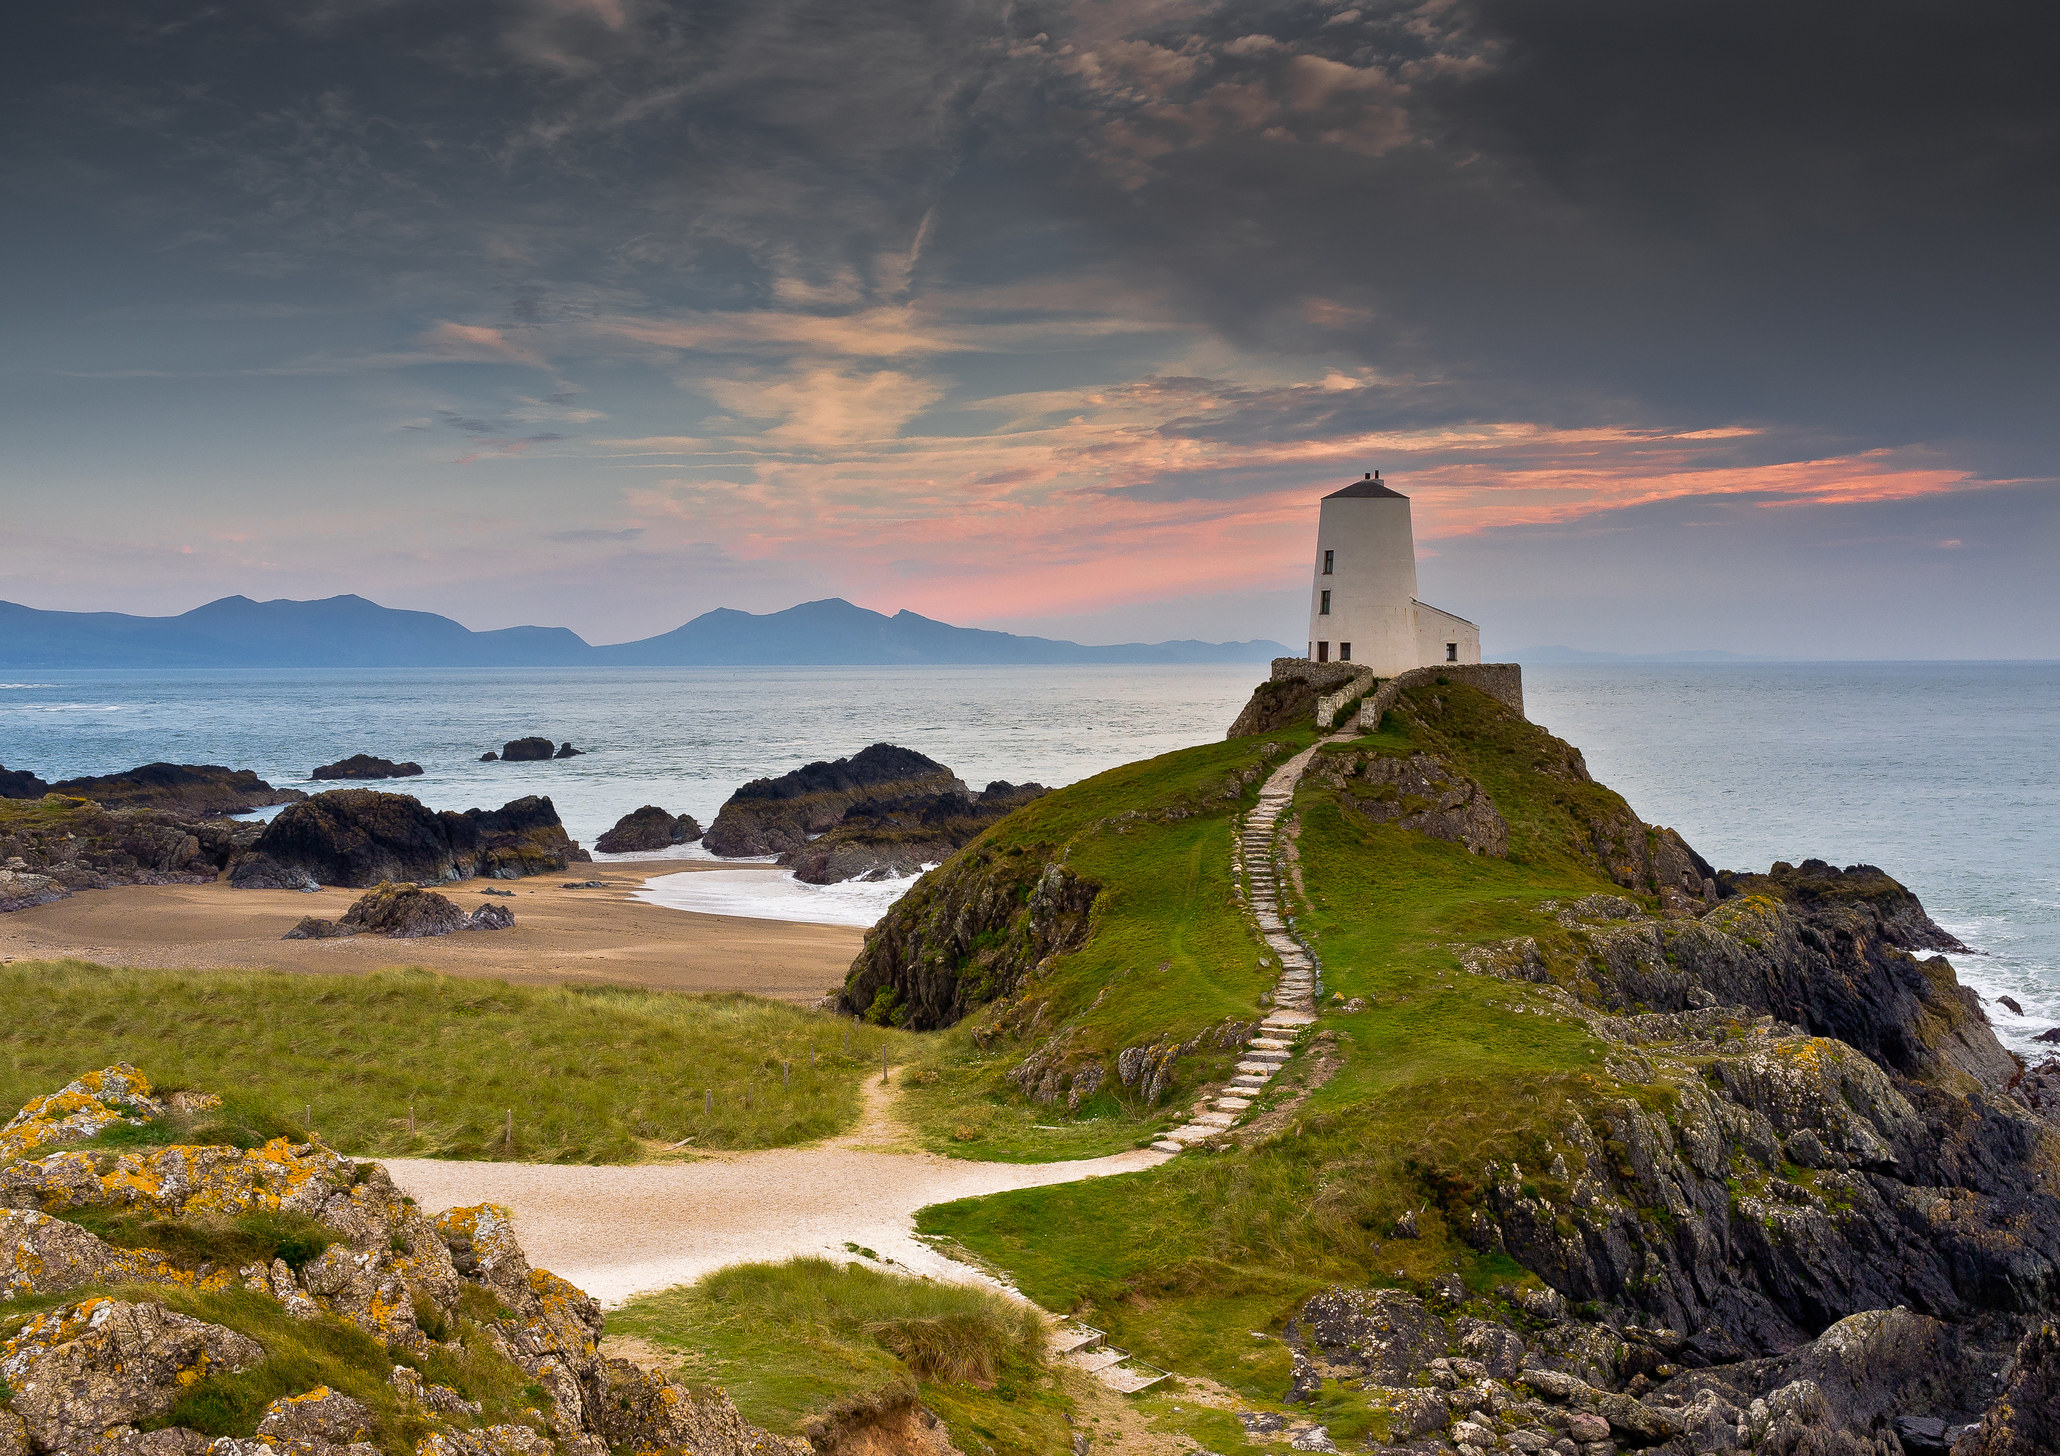 Llanddwyn Lighthouse with Snowdonia mountains in the backdrop.